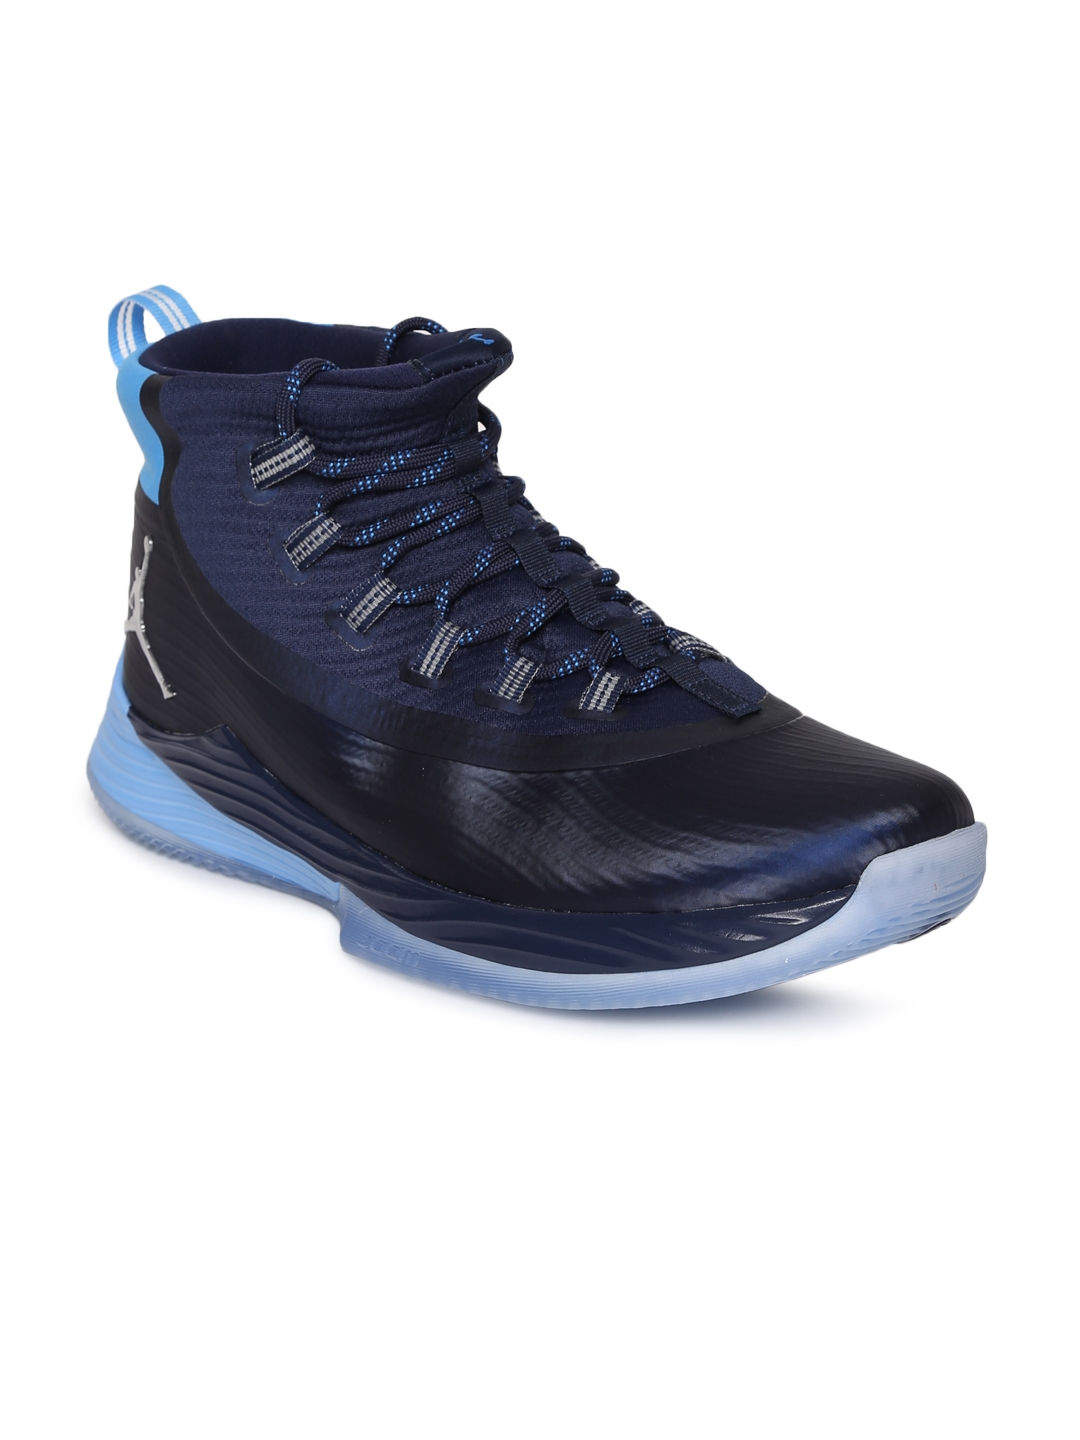 a26fc20a364ff8 Buy Nike Men Blue Textile Mid Top JORDAN ULTRA FLY 2 Basketball ...